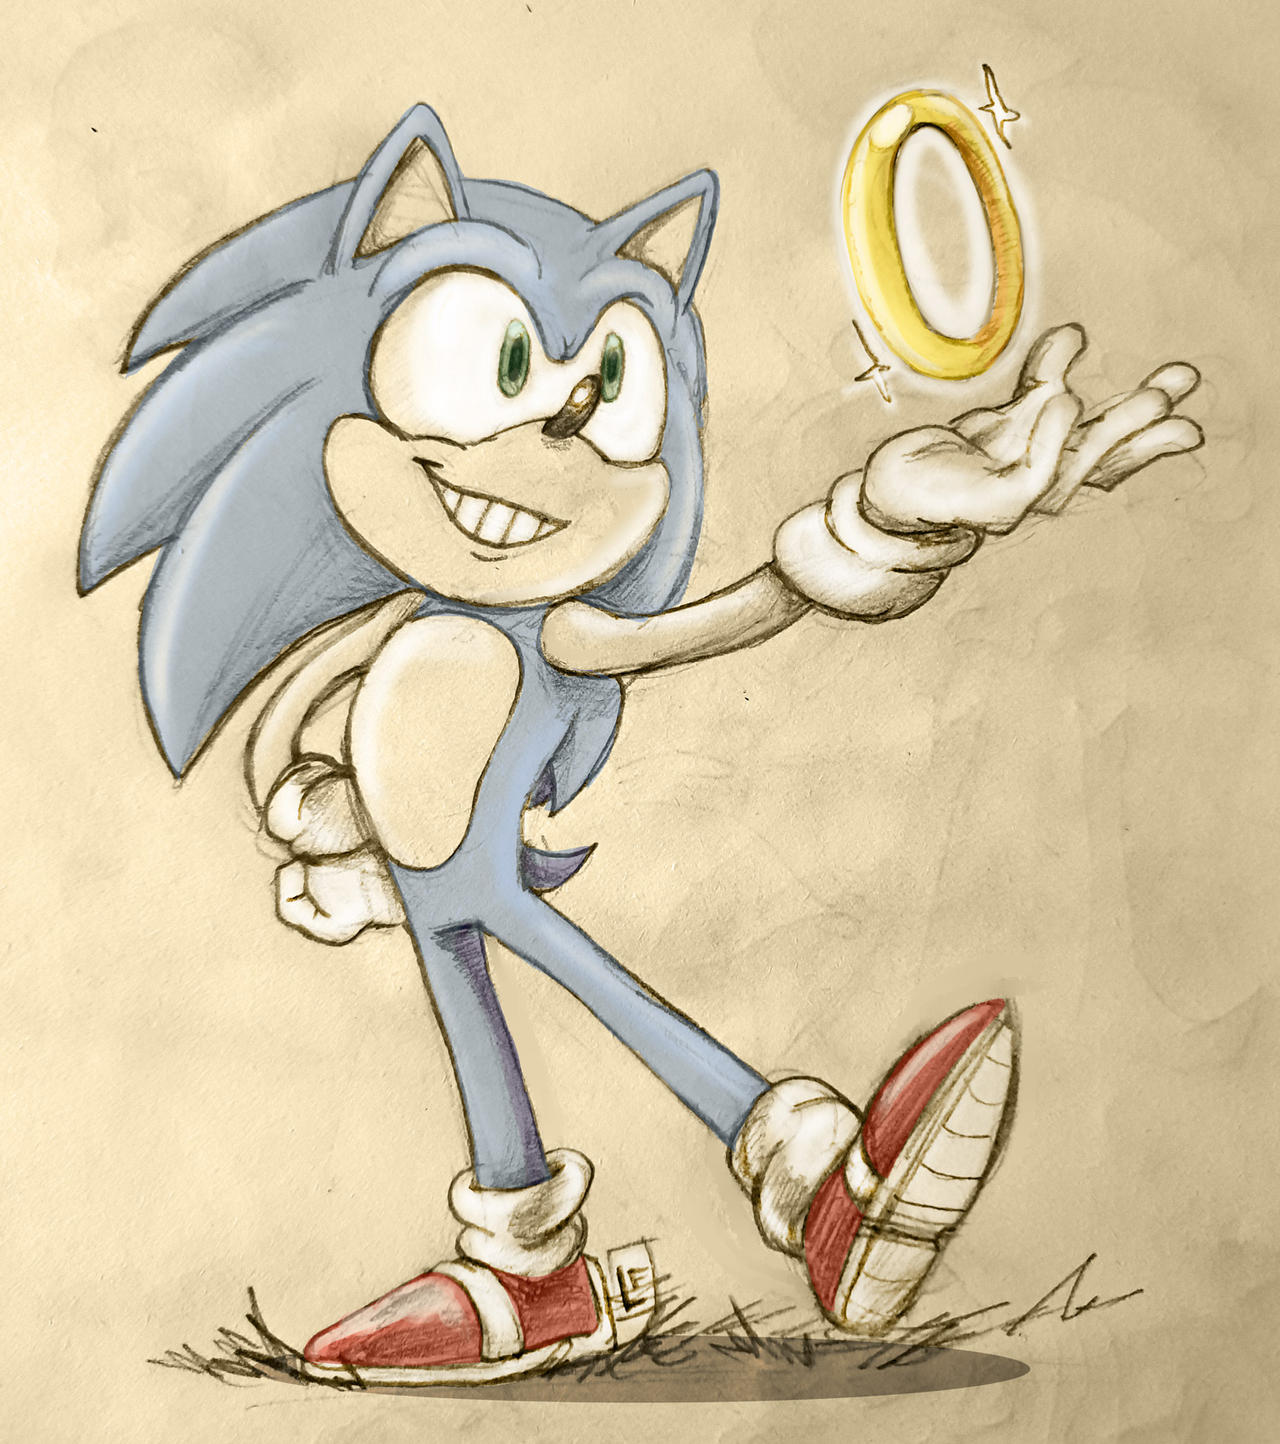 Sonic The Hedgehog A Ring To Rule Them All By Eggmanfan91 On Deviantart